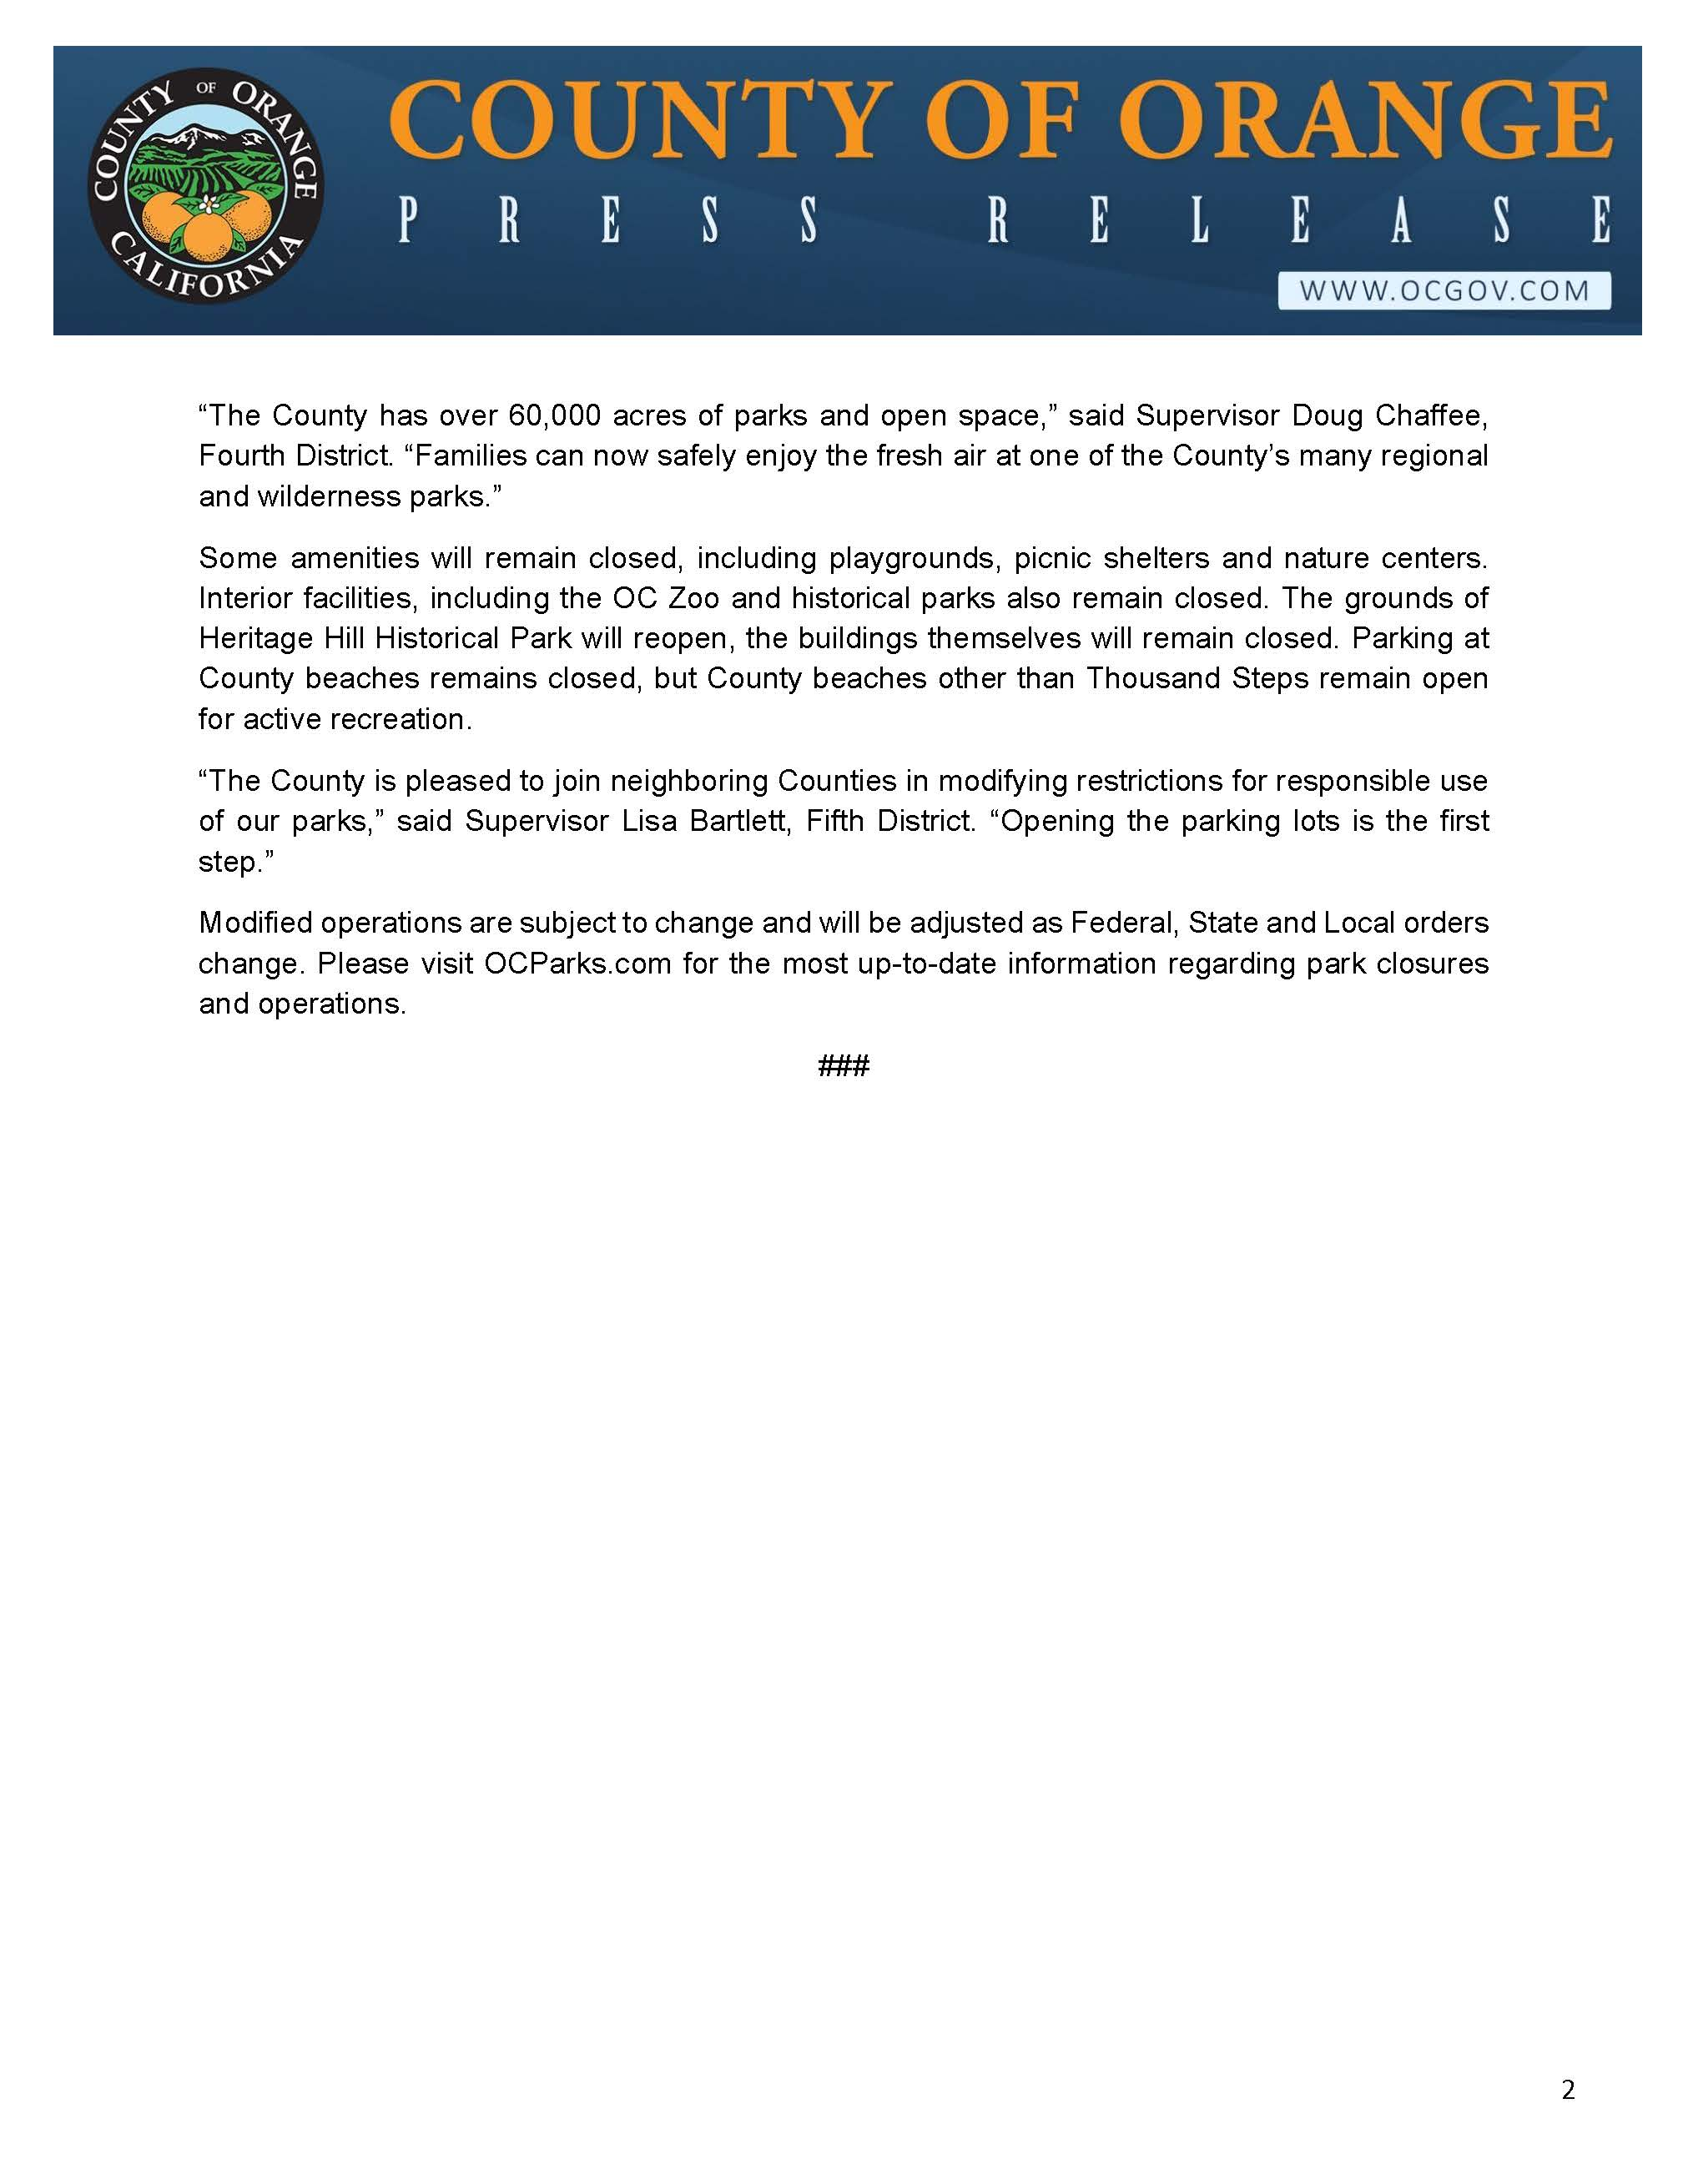 PRESS RELEASE_Parking at County Of Orange Regional and Wilderness Parks to Reopen May 16_Page_2